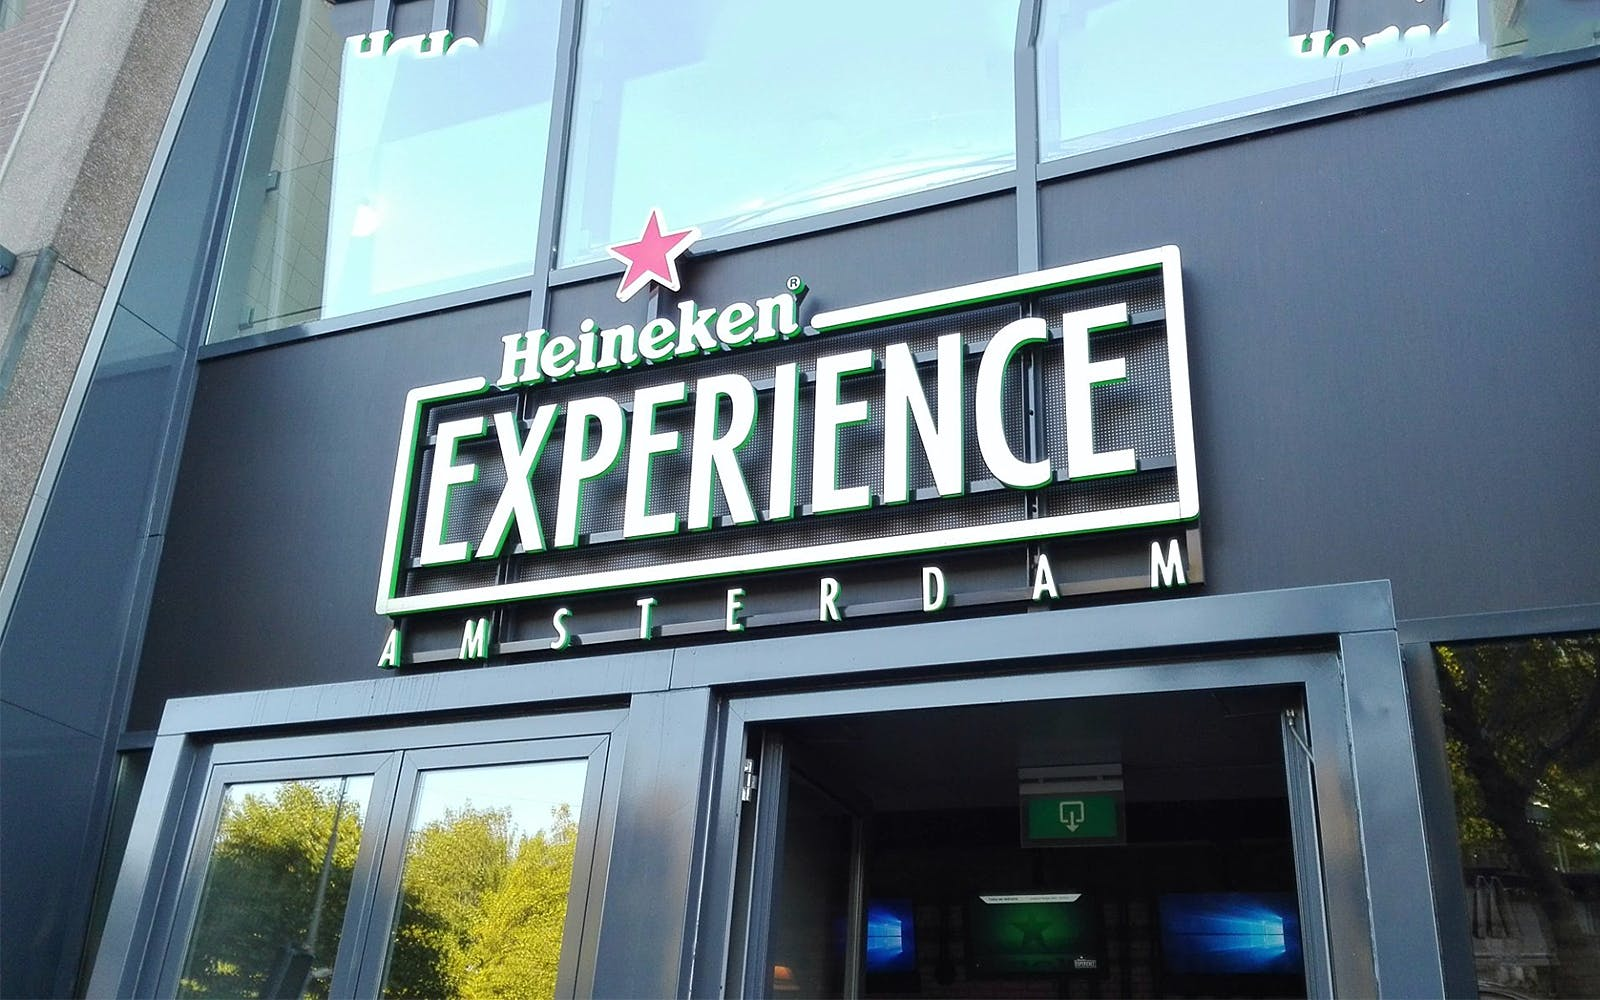 Skip The Line Combo: City Canal Cruise & Heineken Experience Tickets